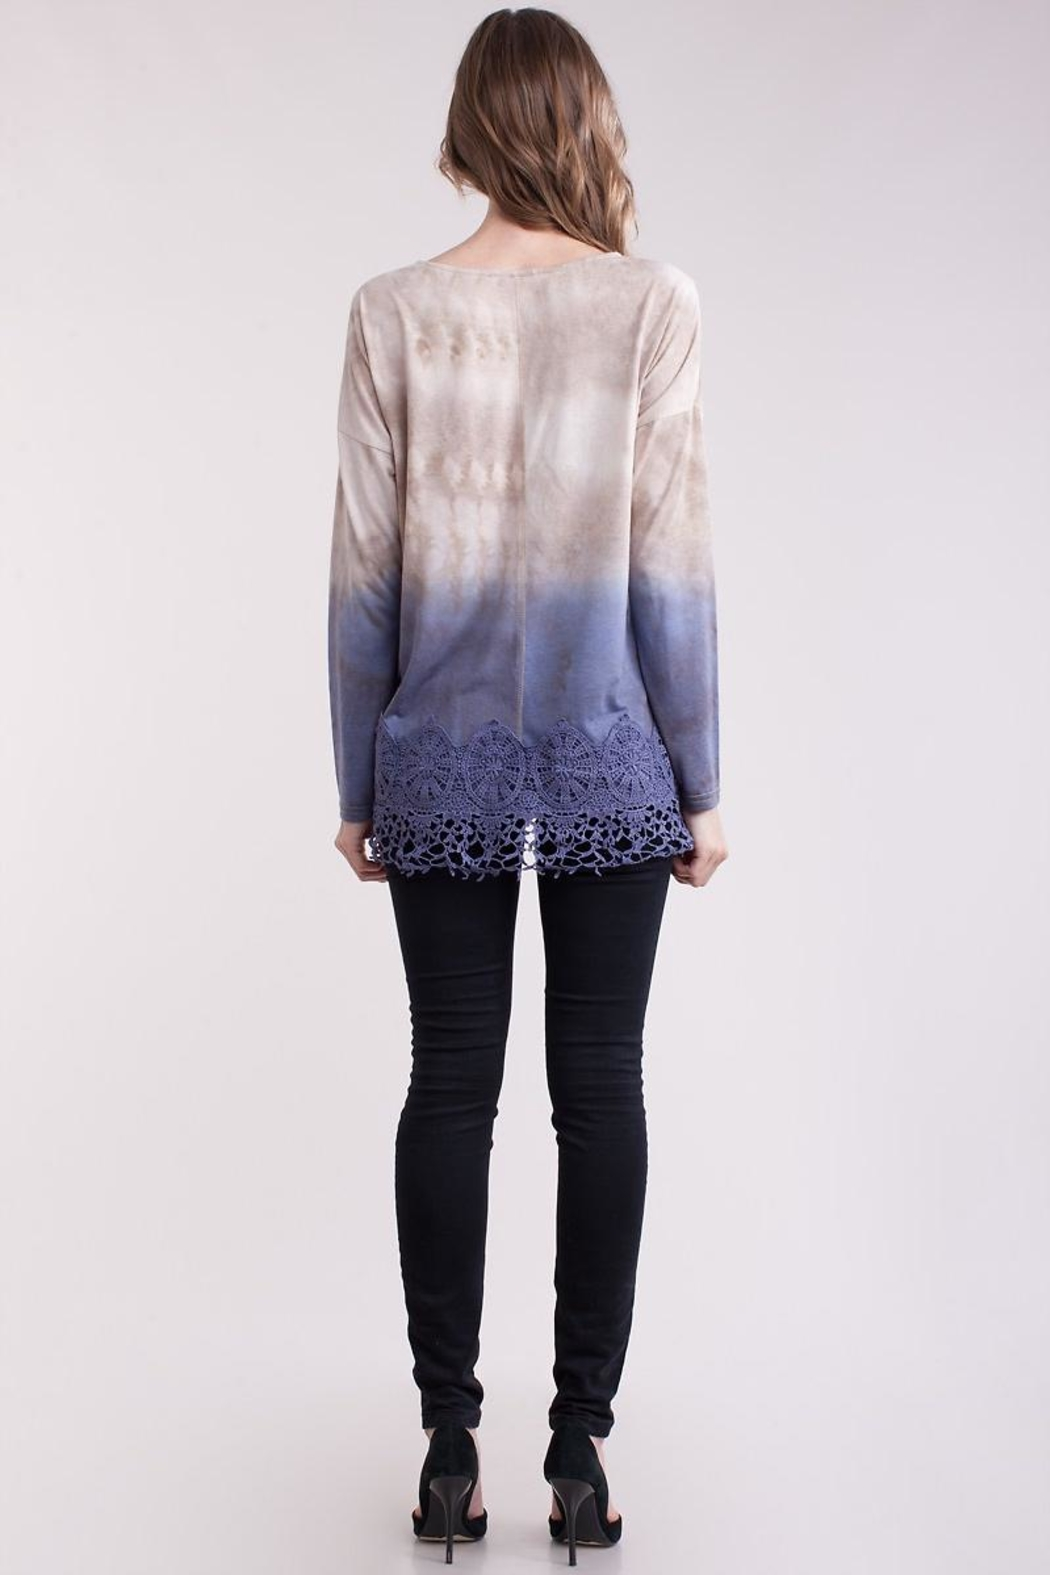 People Outfitter Crochet Dip-Dye Top - Side Cropped Image